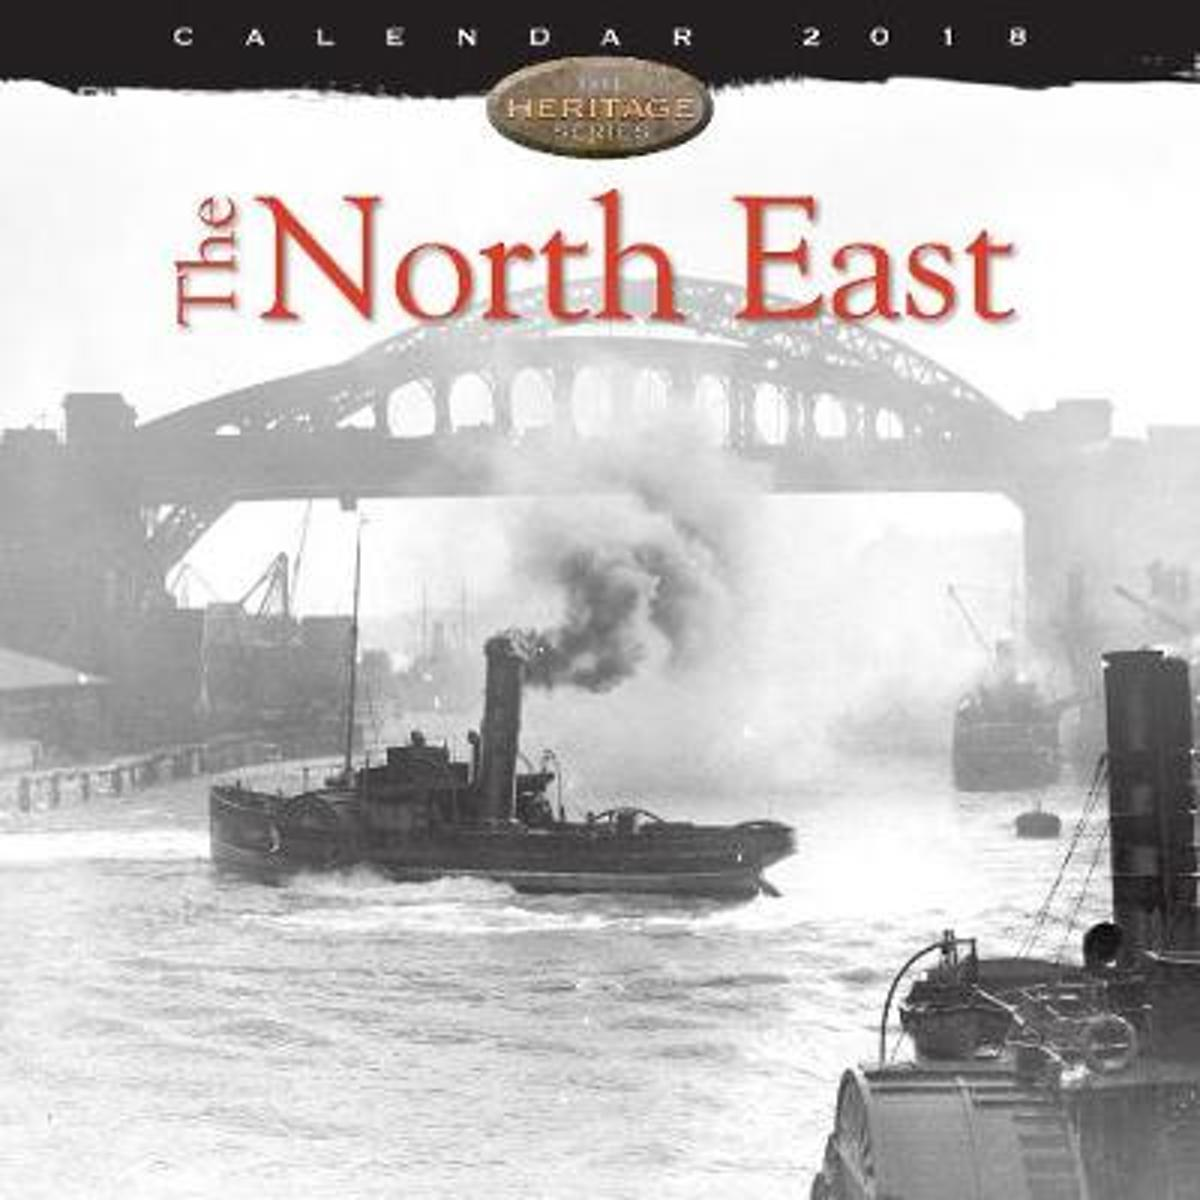 The North East Heritage Wall Calendar 2018 (Art Calendar)